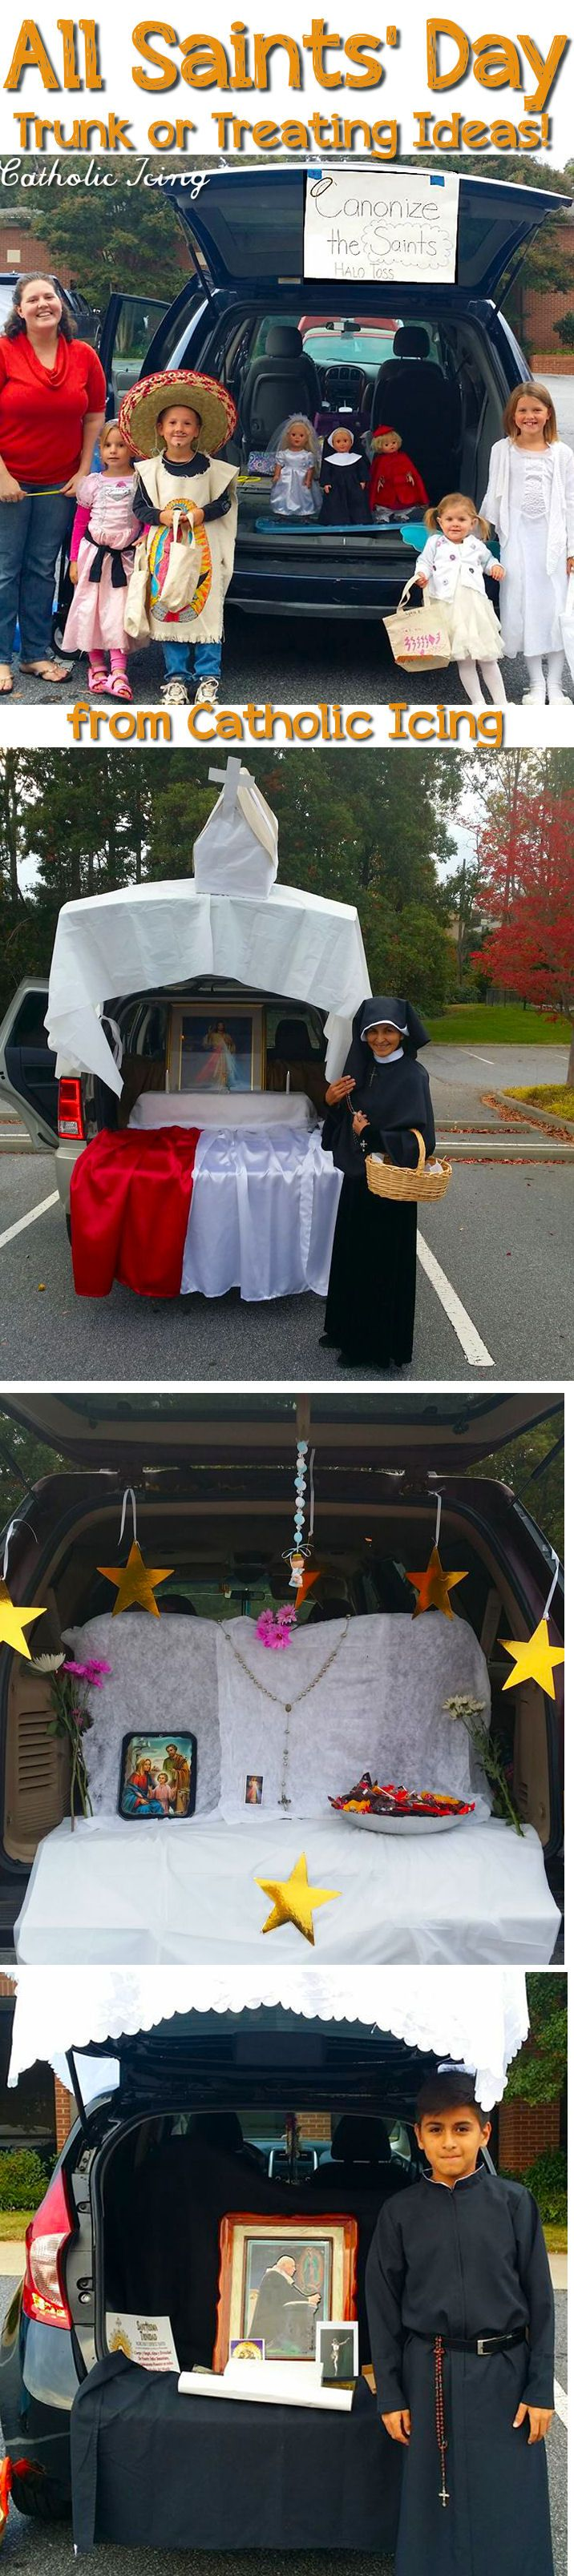 All Saints' Day trunk or treating- lots of ideas for decorations, costumes, games, and more! Are you ready for your All Saints' Day party?  :-)